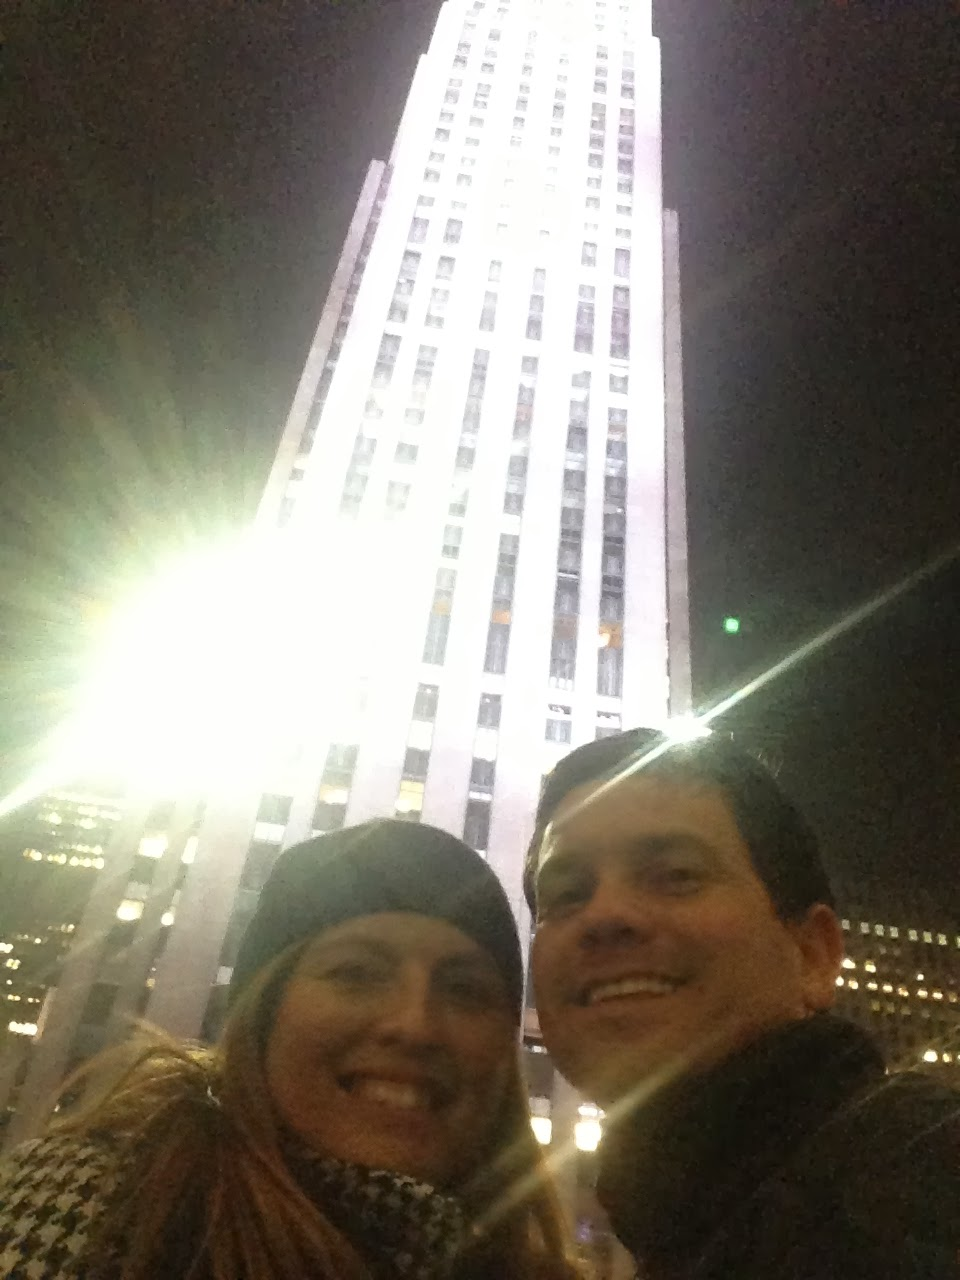 30 rockerfeller center, new york city, couple smiling